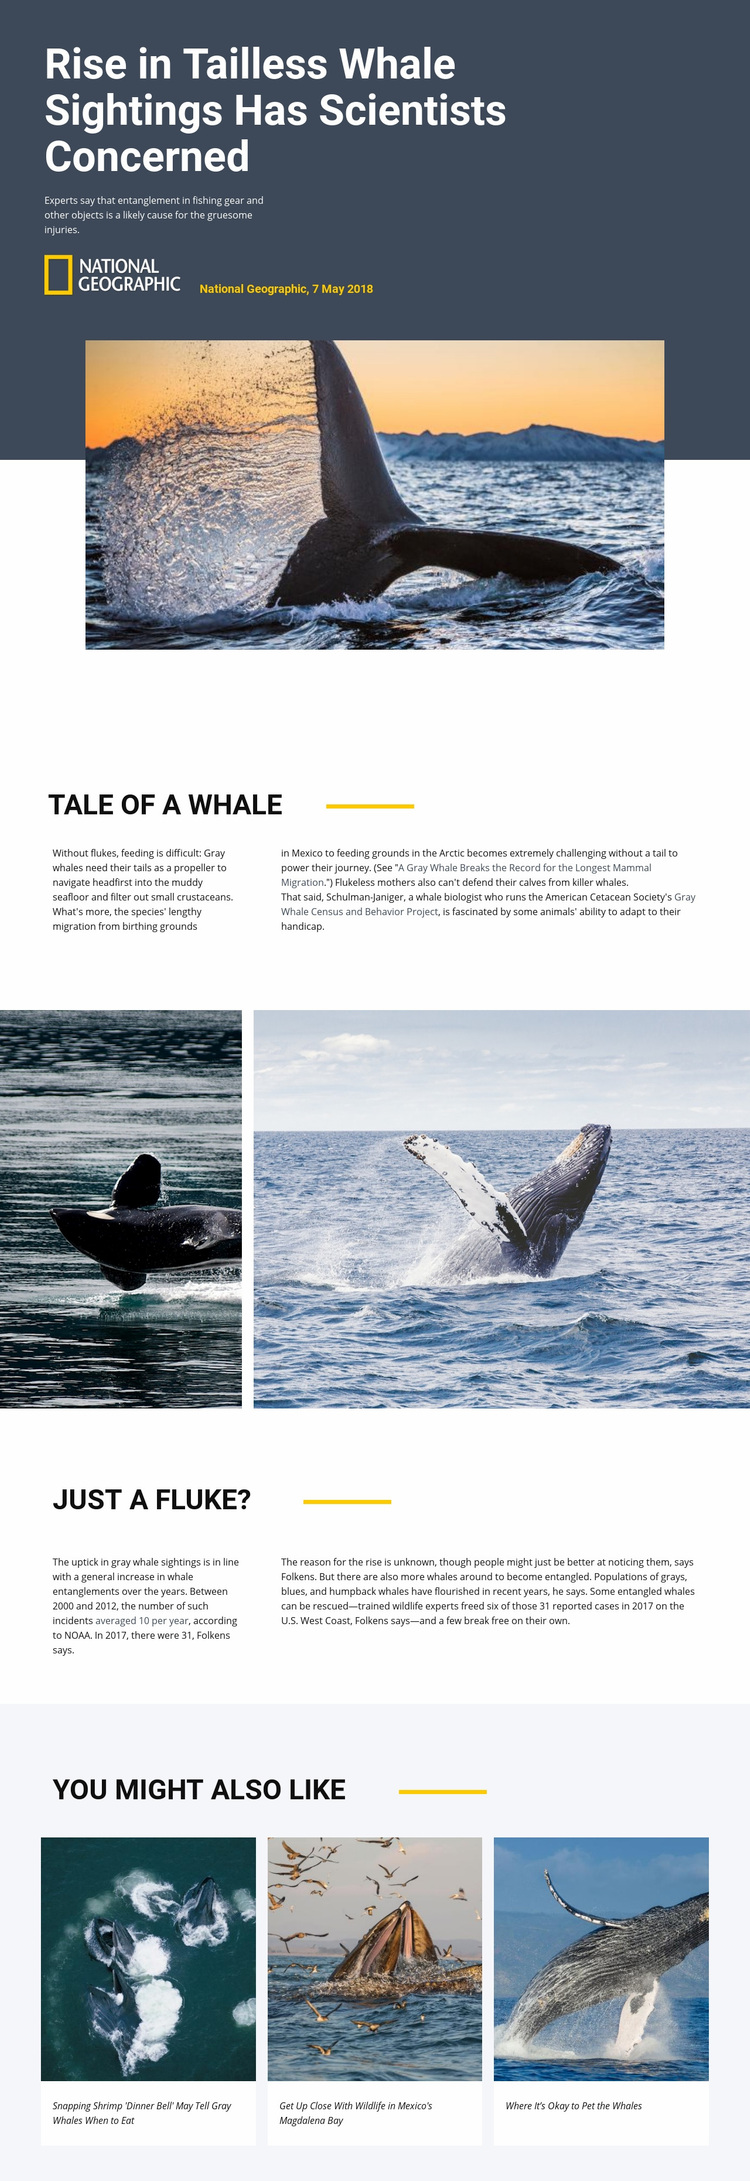 Whale watching center Web Page Designer